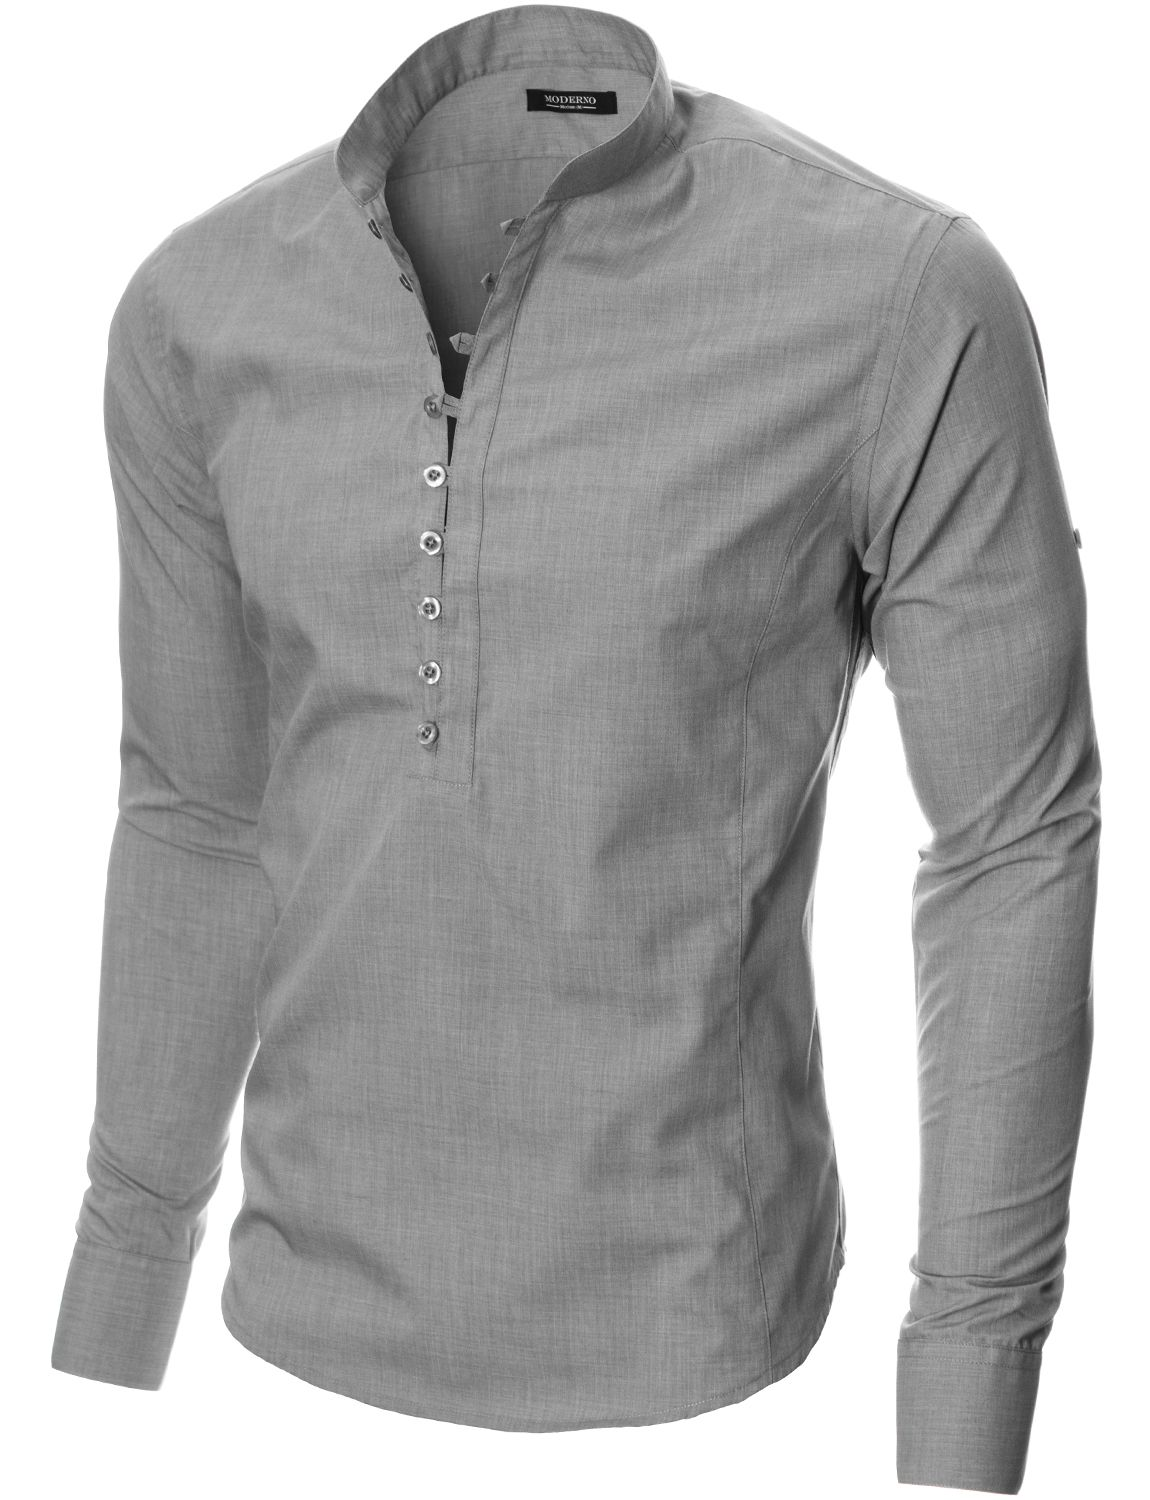 437f8fd5d57475 Mens long sleeve mao collar casual shirt charcoal (MOD1431LS) in ...